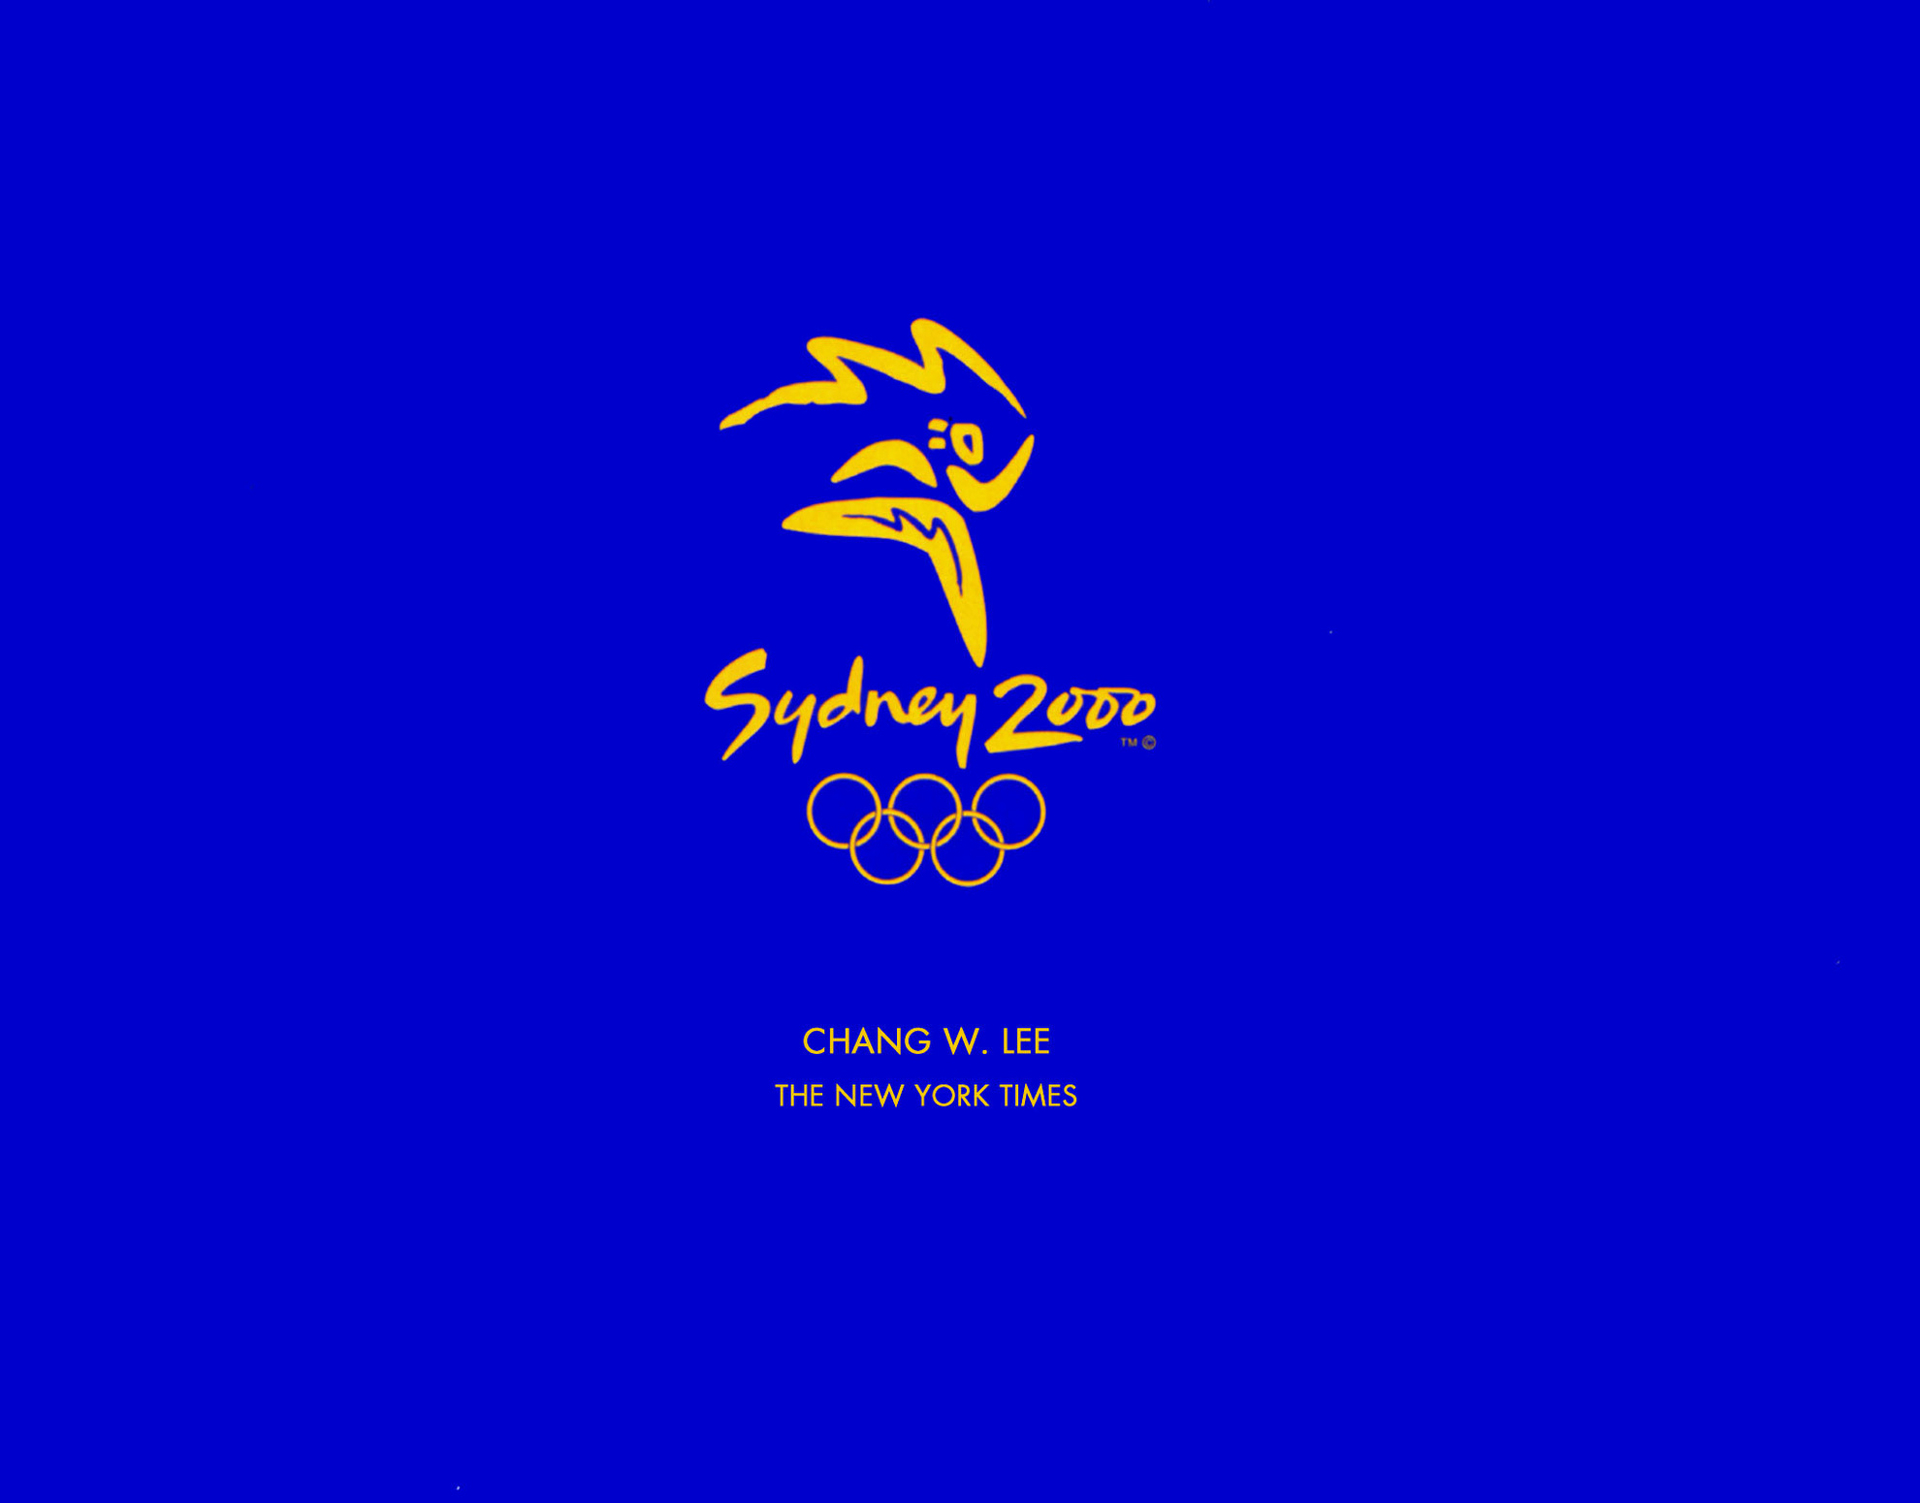 sport added to 2000 olympics in sydney - photo#27